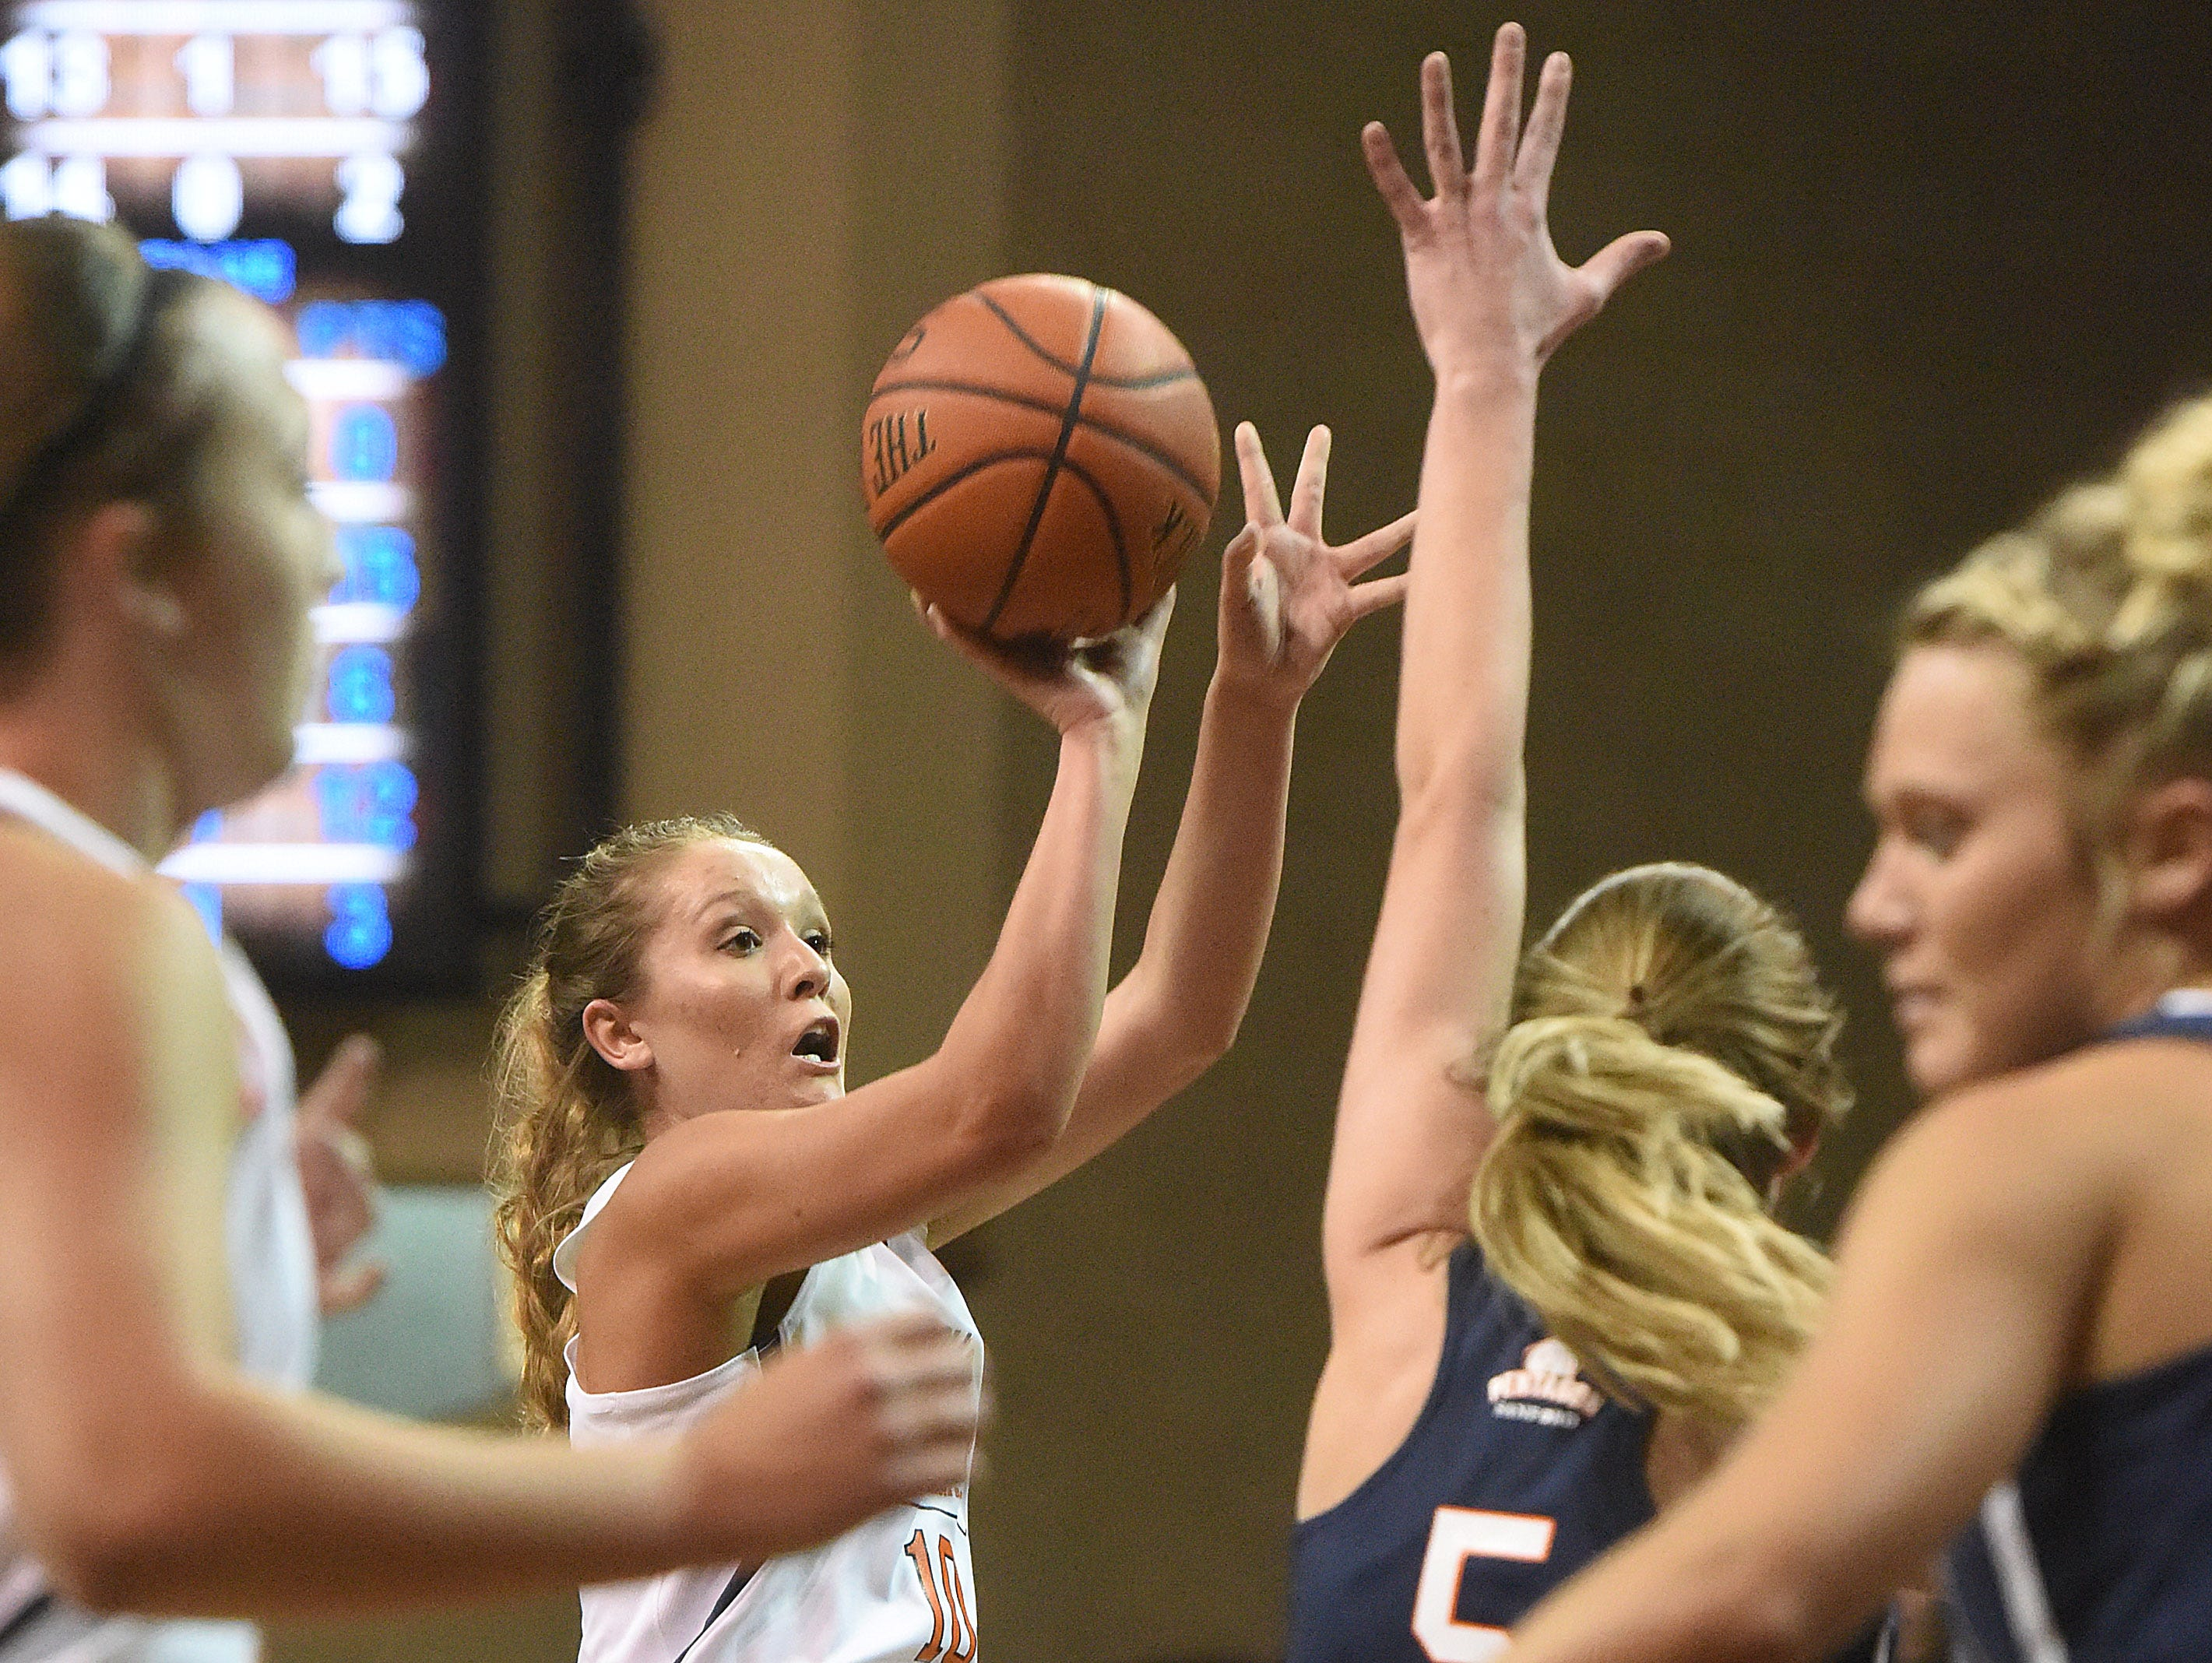 The White Team's Ali Kuca (10) shoots over the Blue Team's Anna Goodhope (5) during the Argus Leader/Sanford Pentagon First Five All-Star Game on Sunday, April 10, 2016, at the Sanford Pentagon in Sioux Falls.